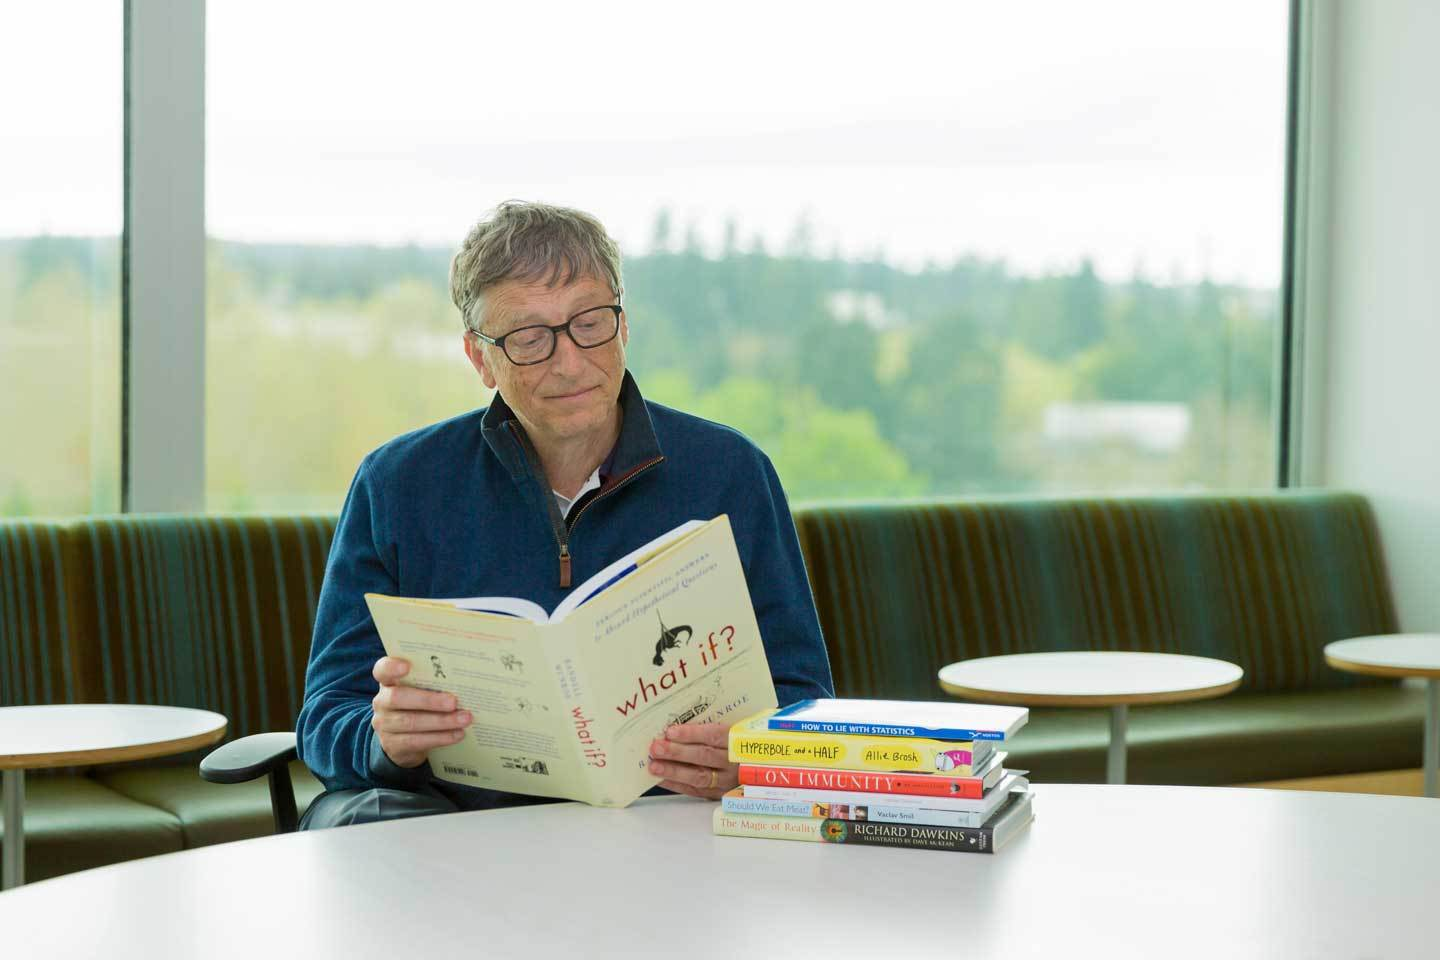 Top 5 Reasons why you should read more